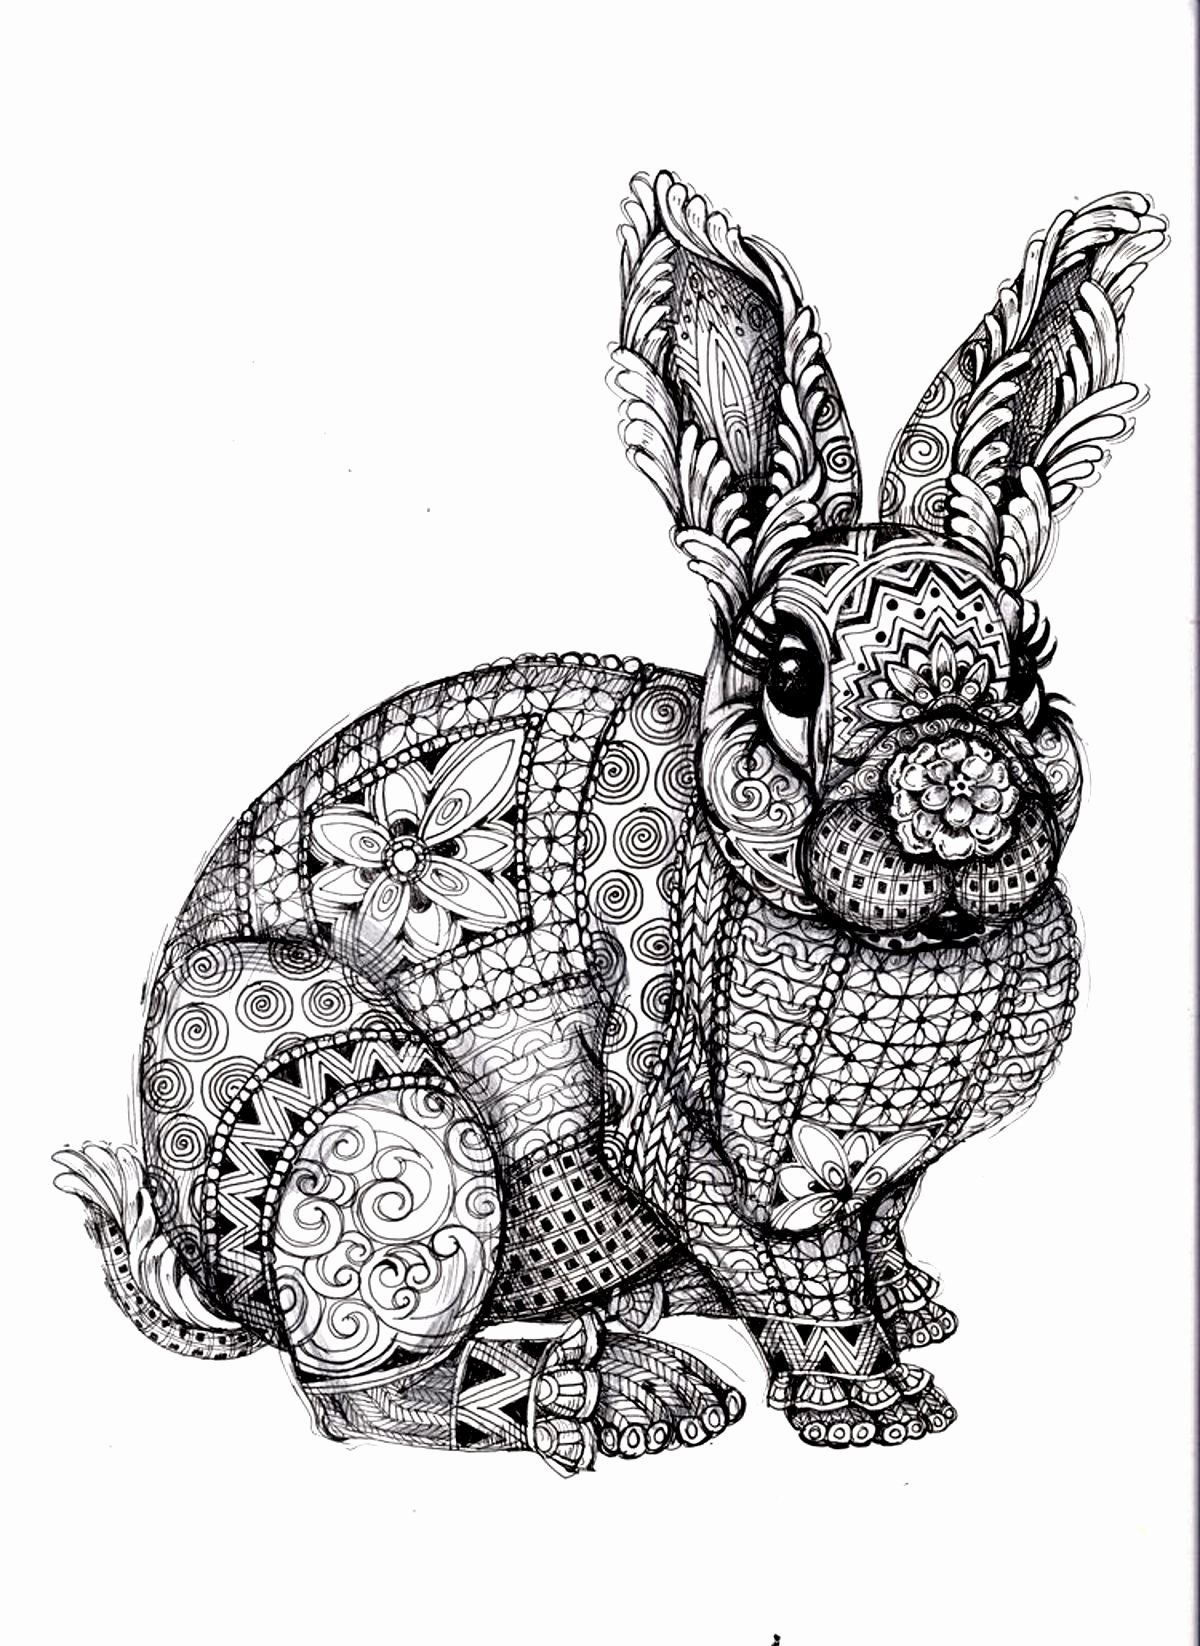 Coloring Pages Animals Hard New 23 Plicated Animal Coloring Pages Collection Coloring Animal Coloring Pages Mandala Coloring Pages Mandala Coloring